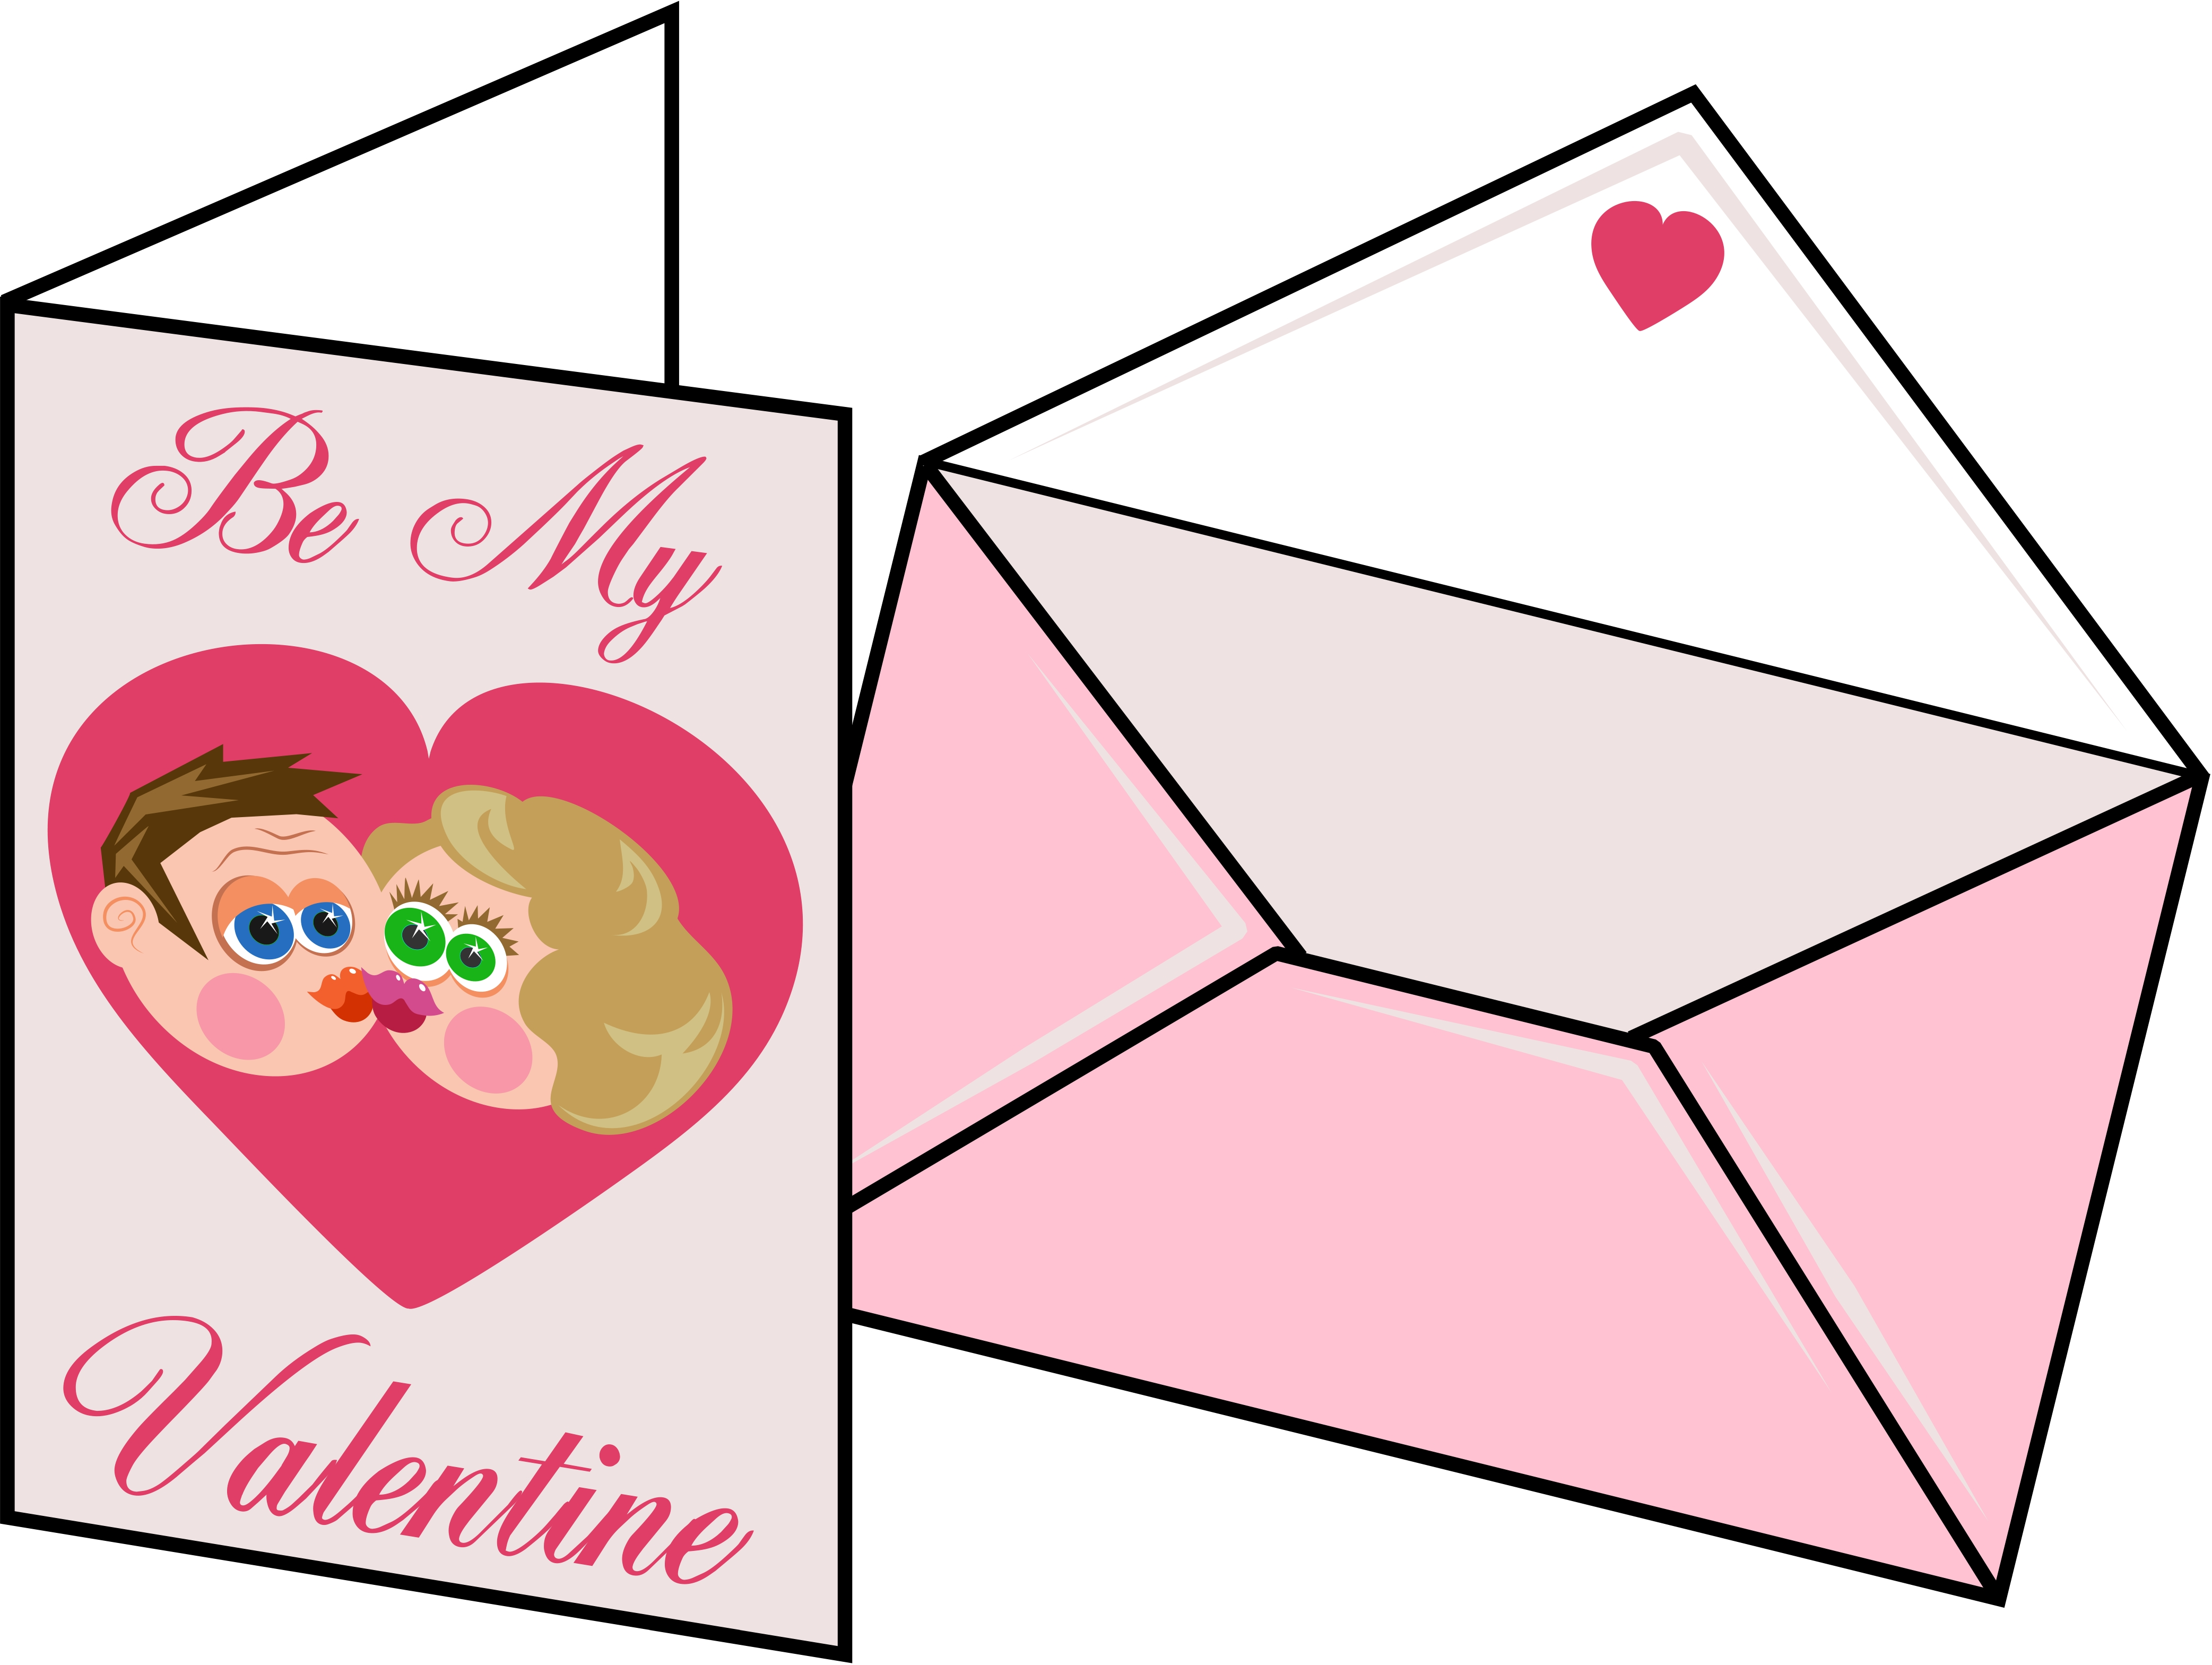 Free Card Cliparts, Download Free Clip Art, Free Clip Art on.